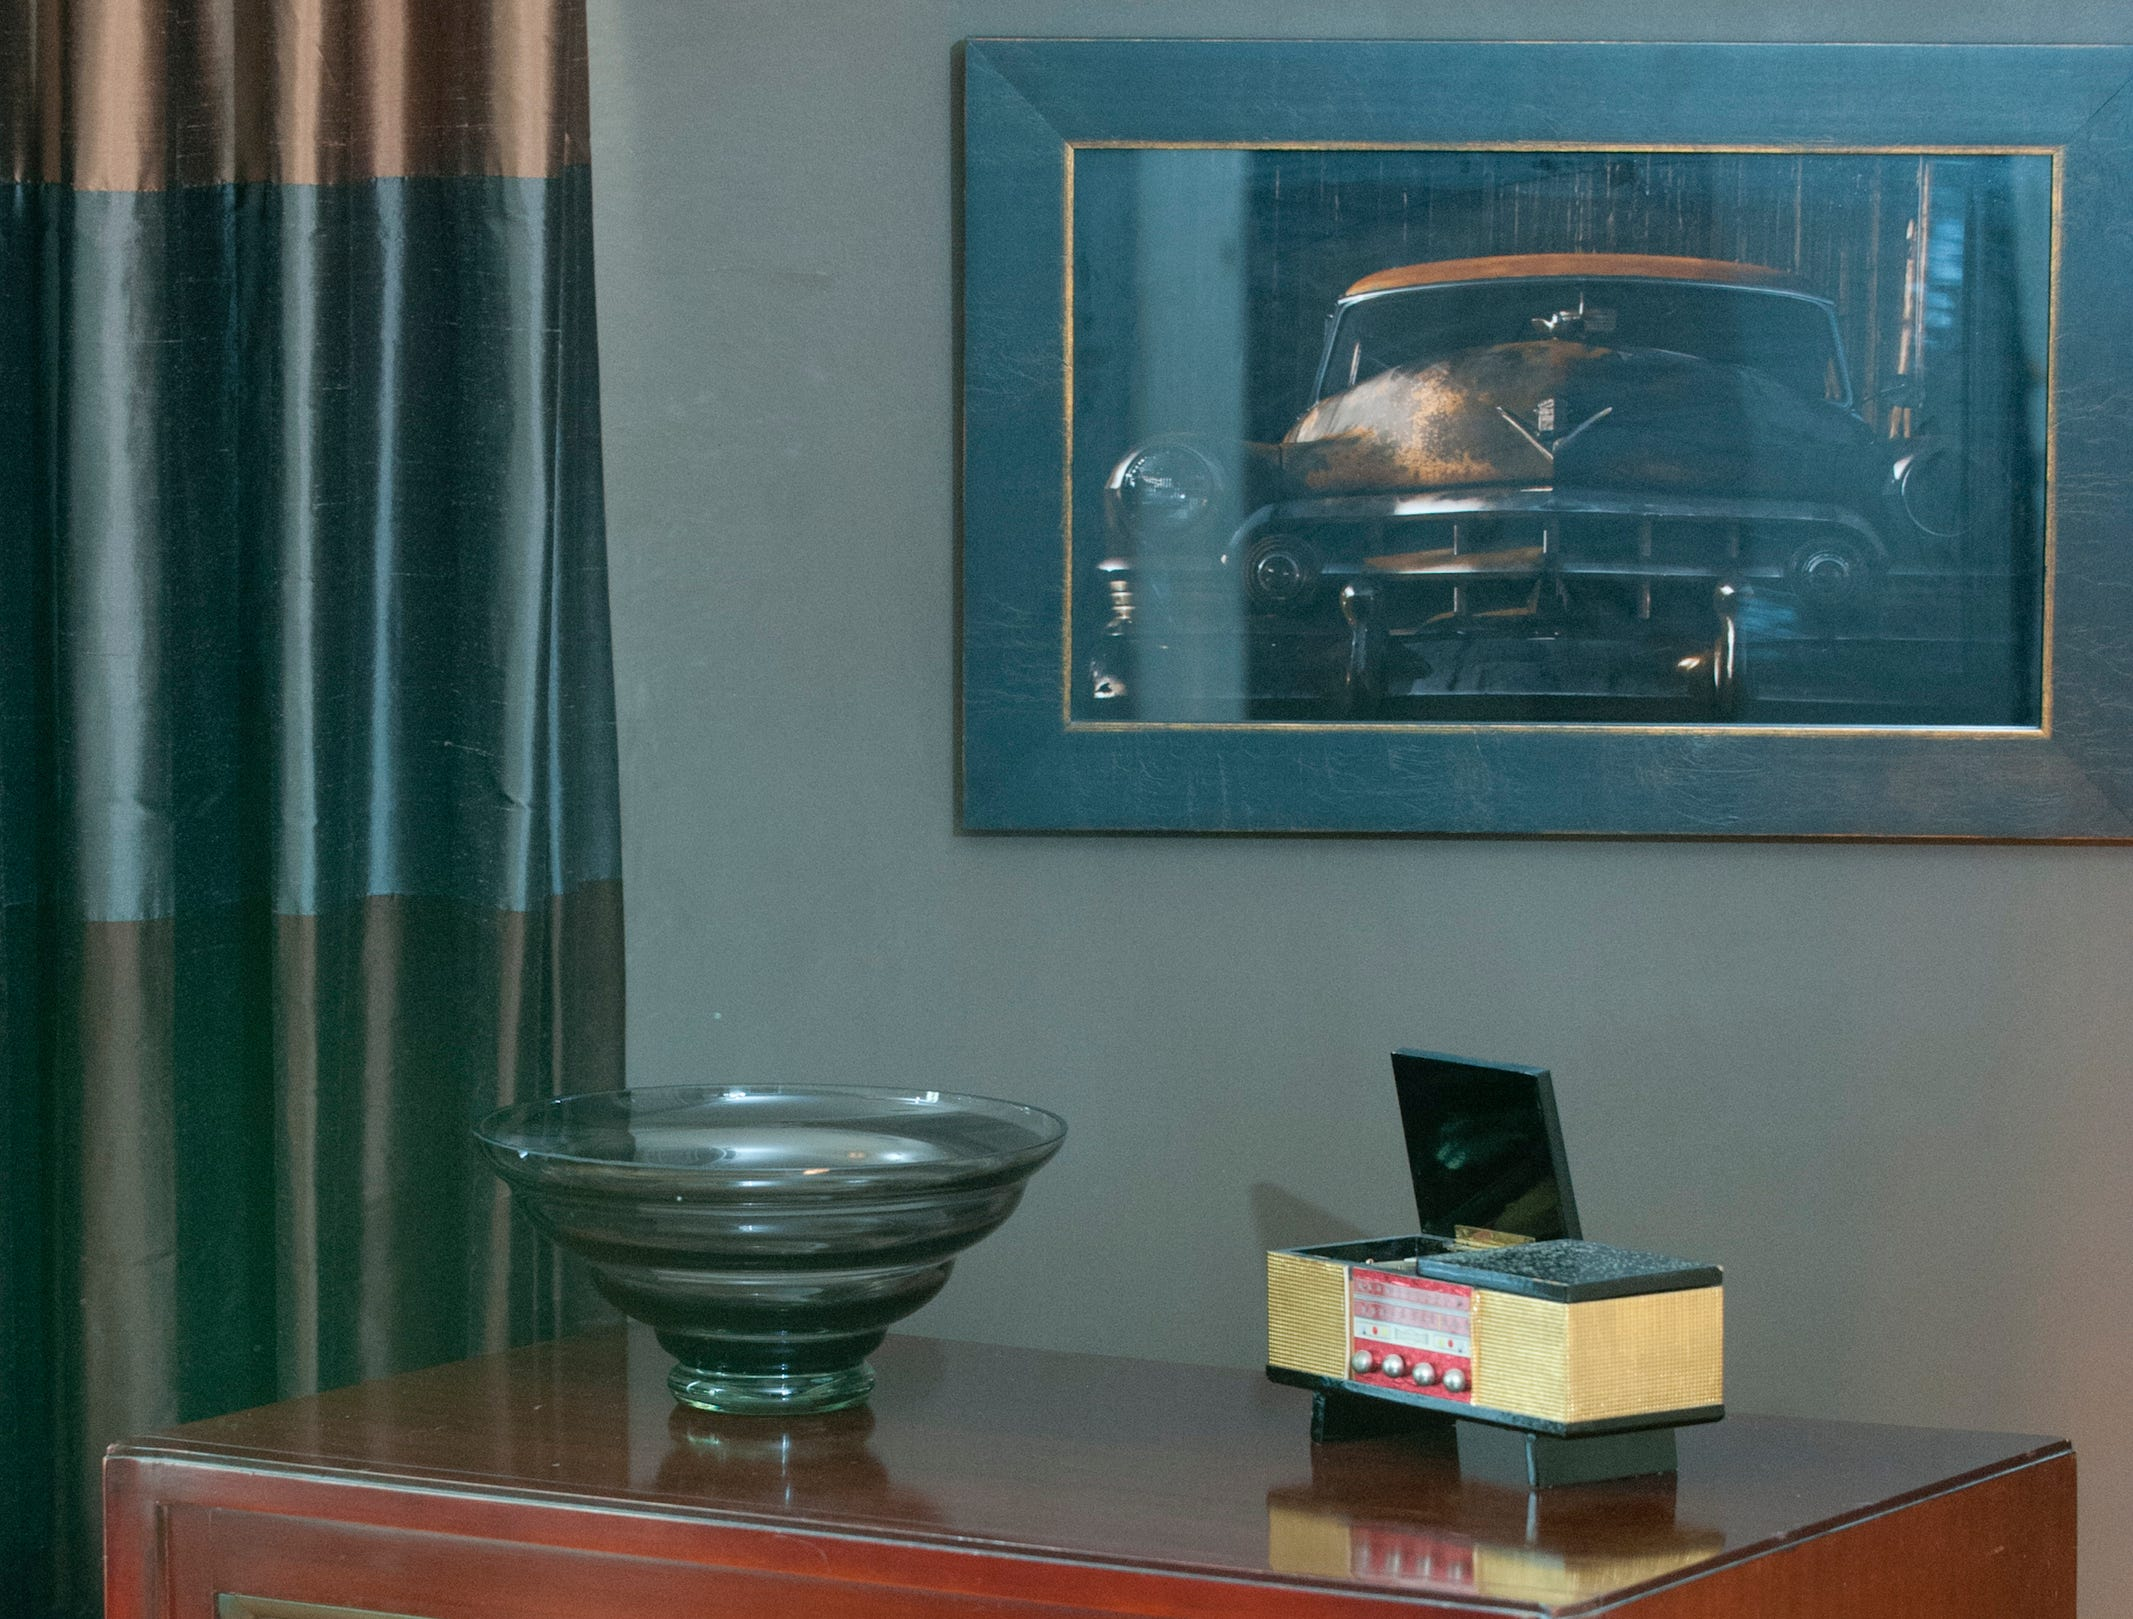 This vintage RCA console sits below a photograph of a 1950's Cadillac in the master bedroom.10 December 2018